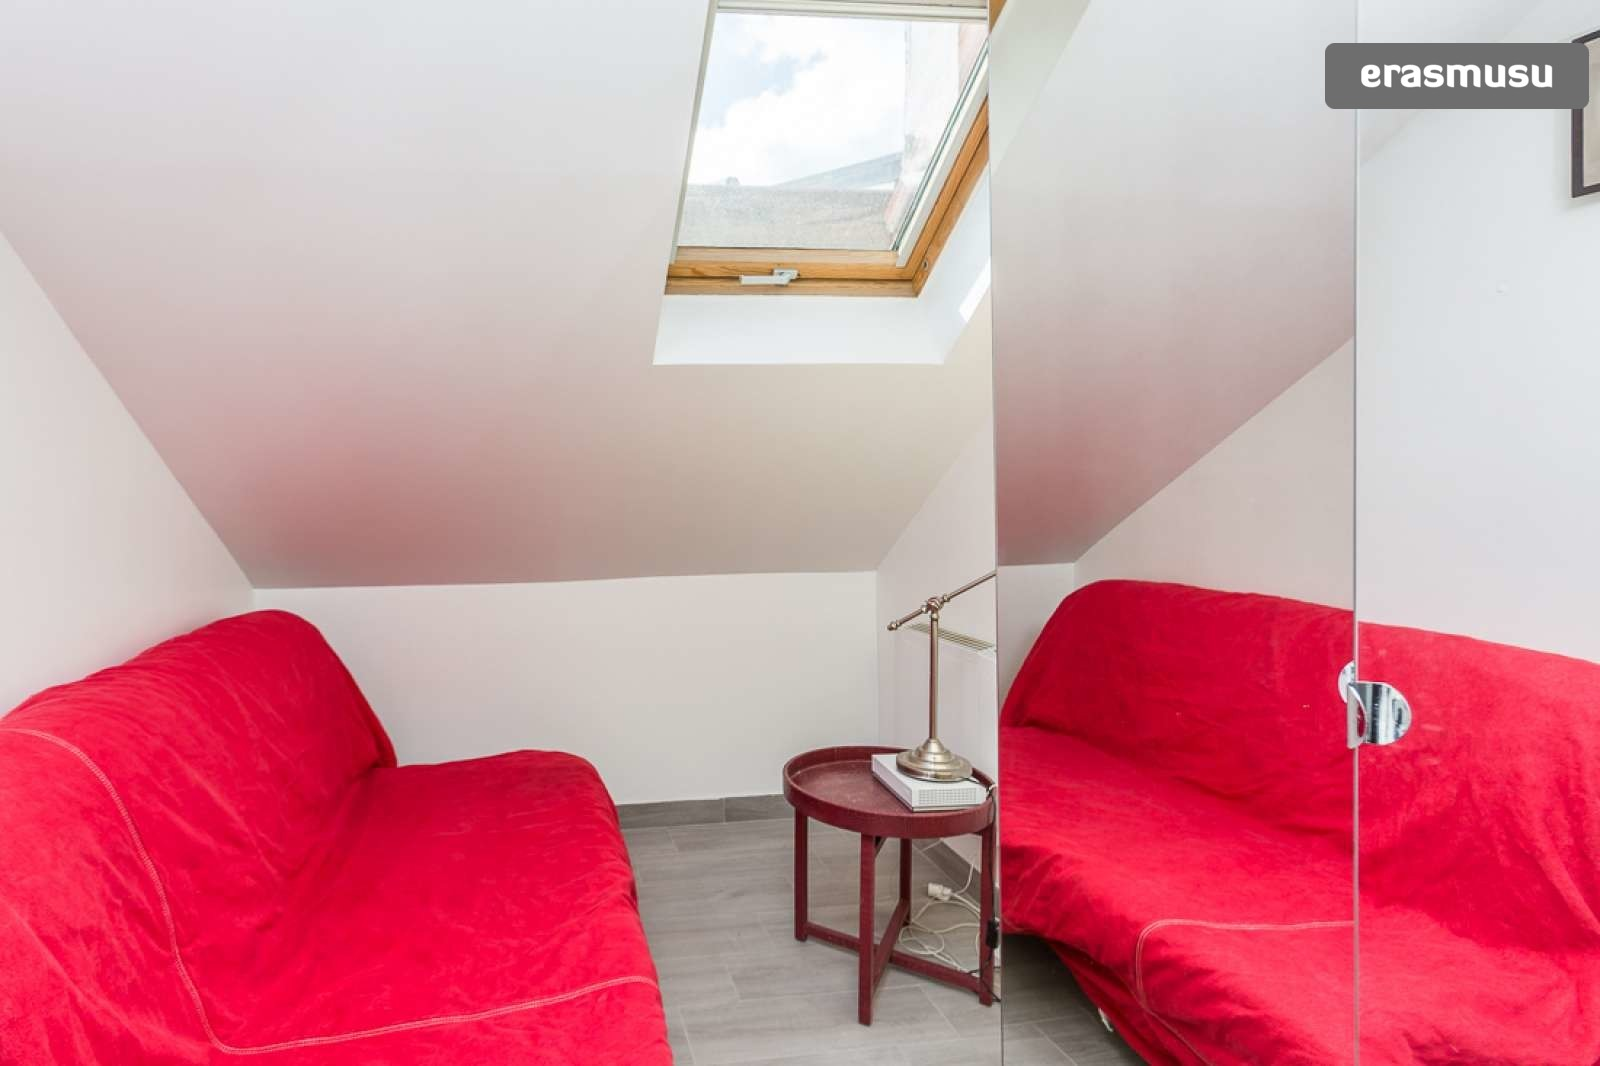 Modern Studio Apartment With Loft Bedroom For Rent Near Metro In